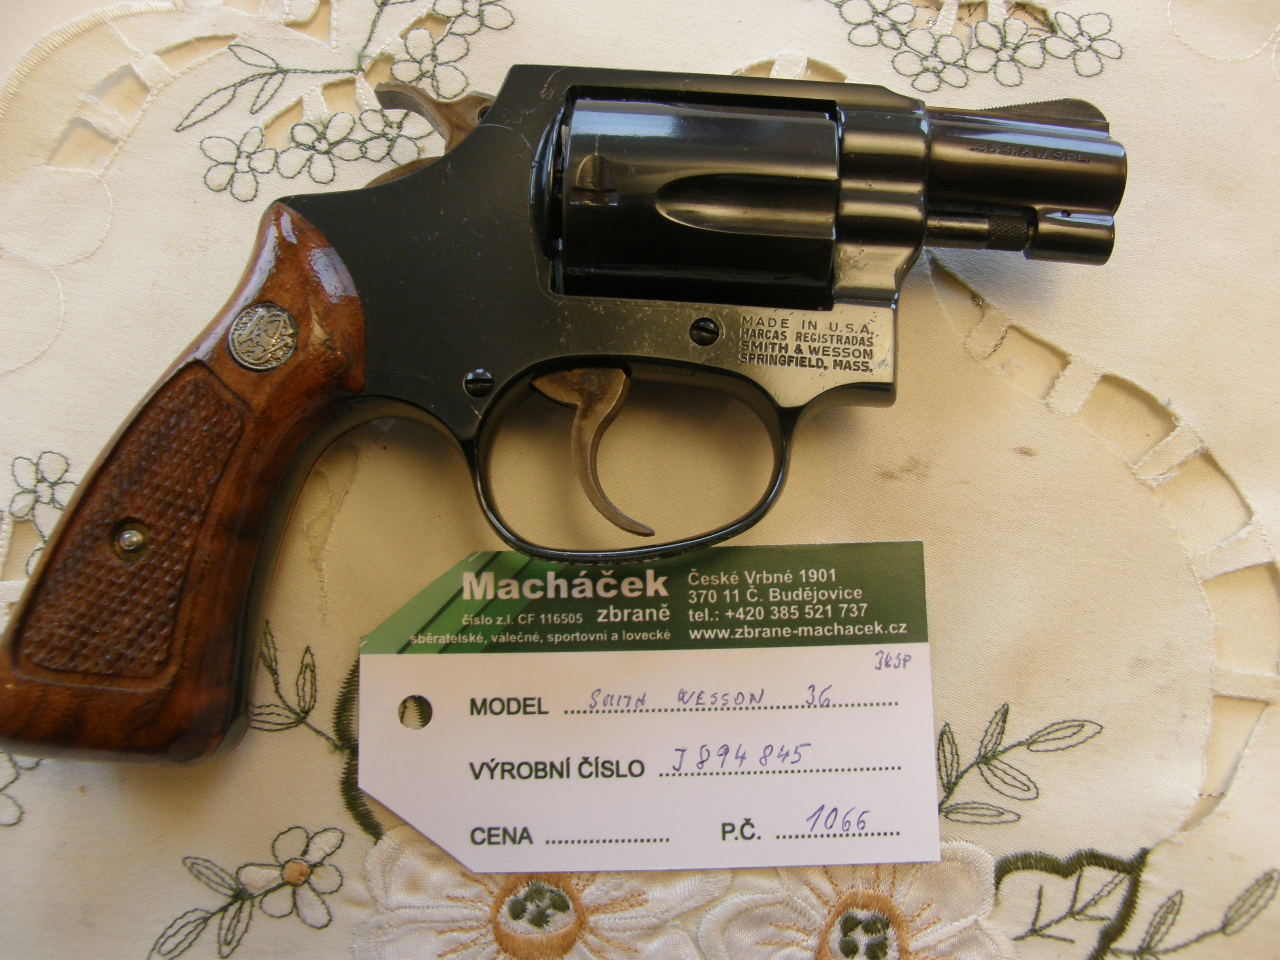 Revolver Smith Wesson Mod. 36 v.č.J884845 r. 38